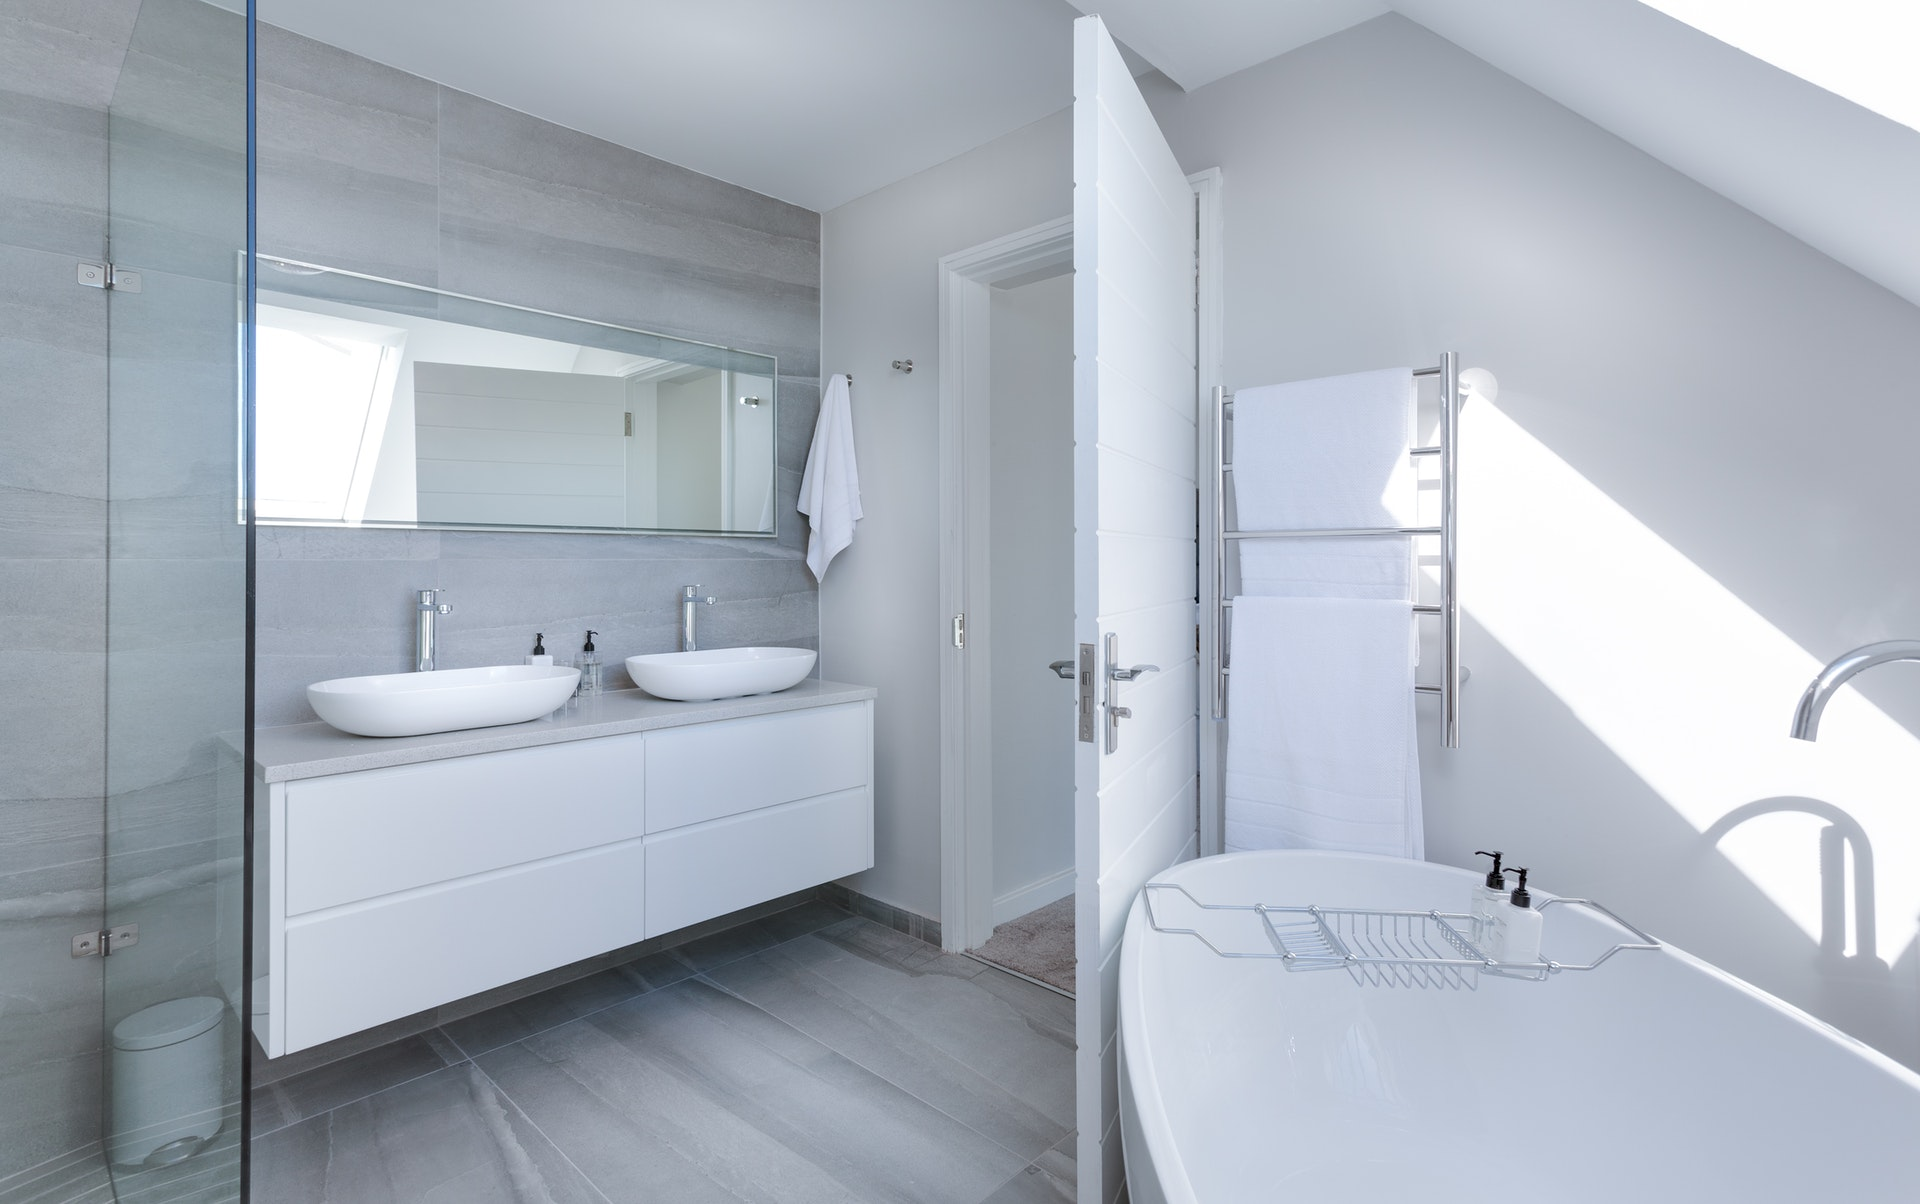 Making Necessary Changes: The Advantages of a Bathroom Remodel